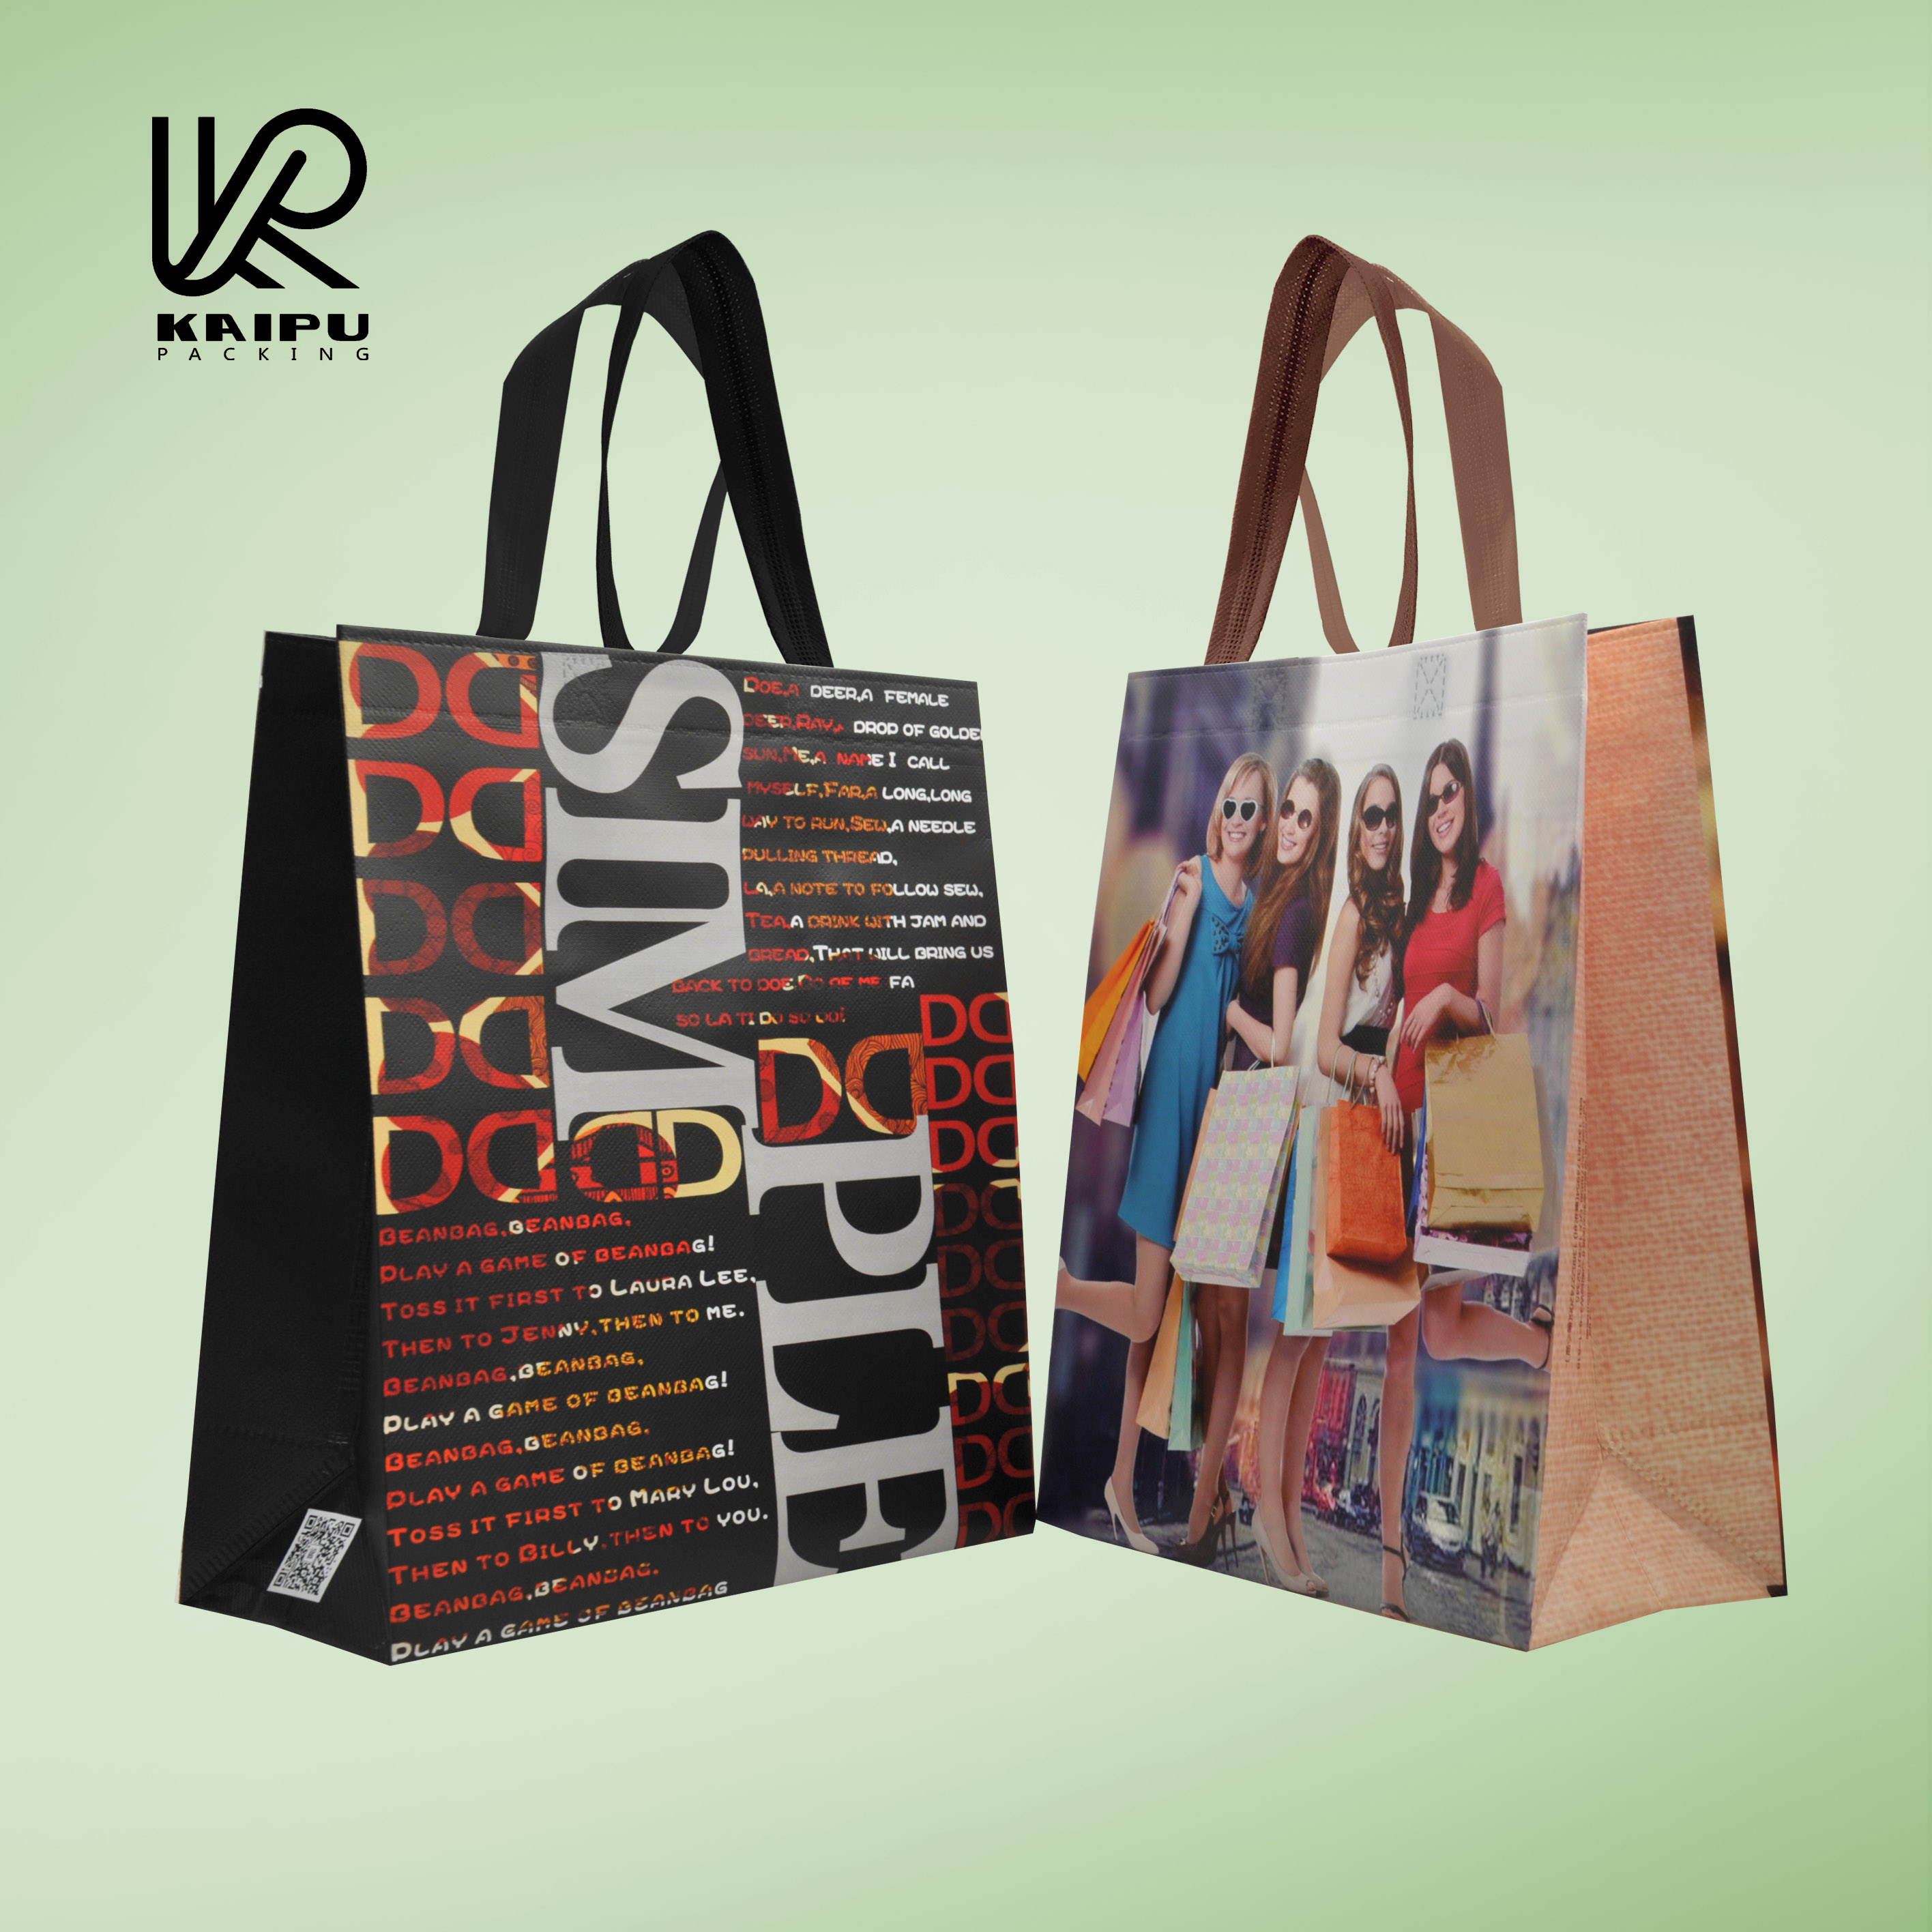 New product 2016 pp non-woven tote shopping bag full color printed manufactured in China